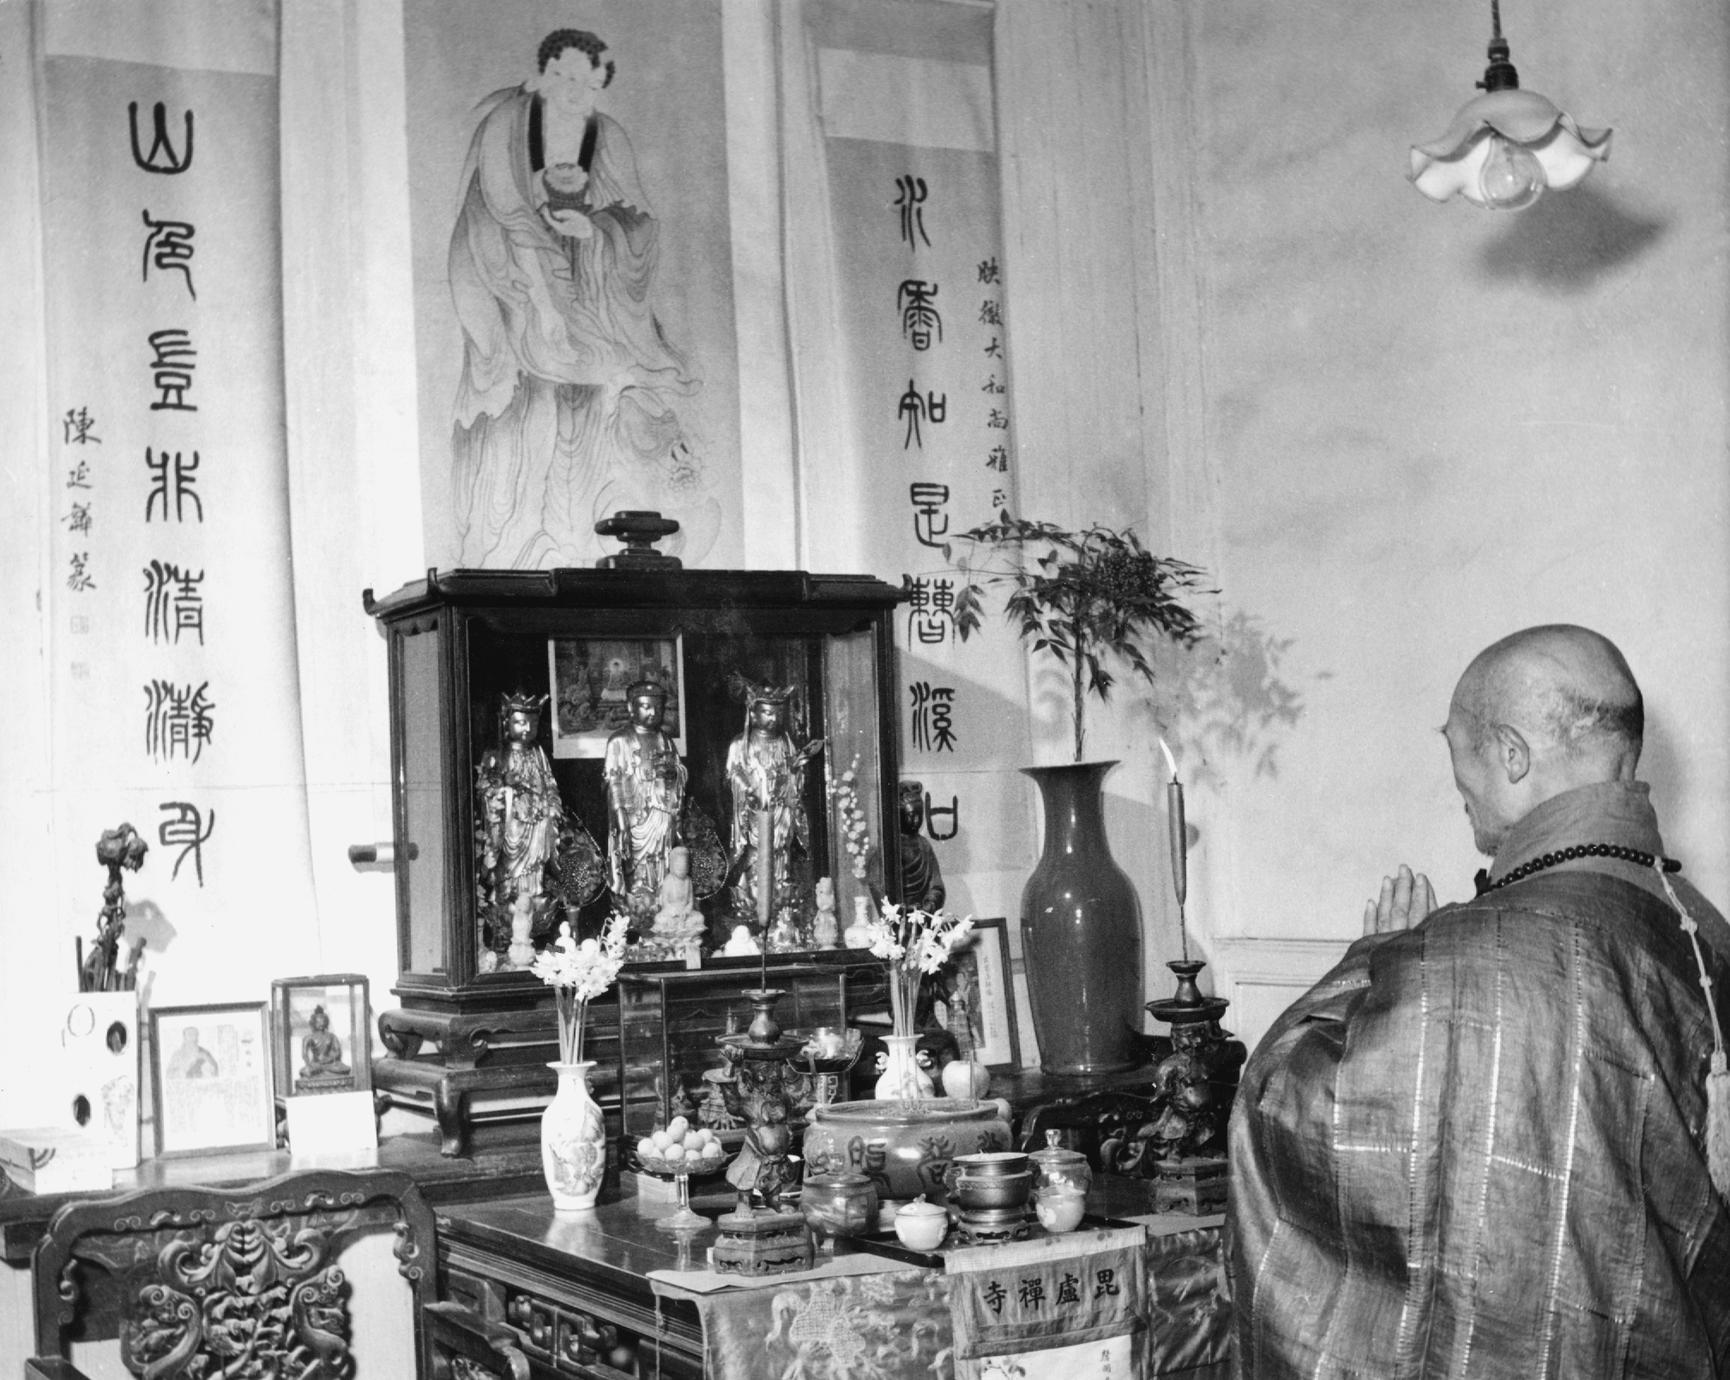 The abbot of Pilu Si (Pilu Monastery) 毘盧寺 kneels before his private altar.